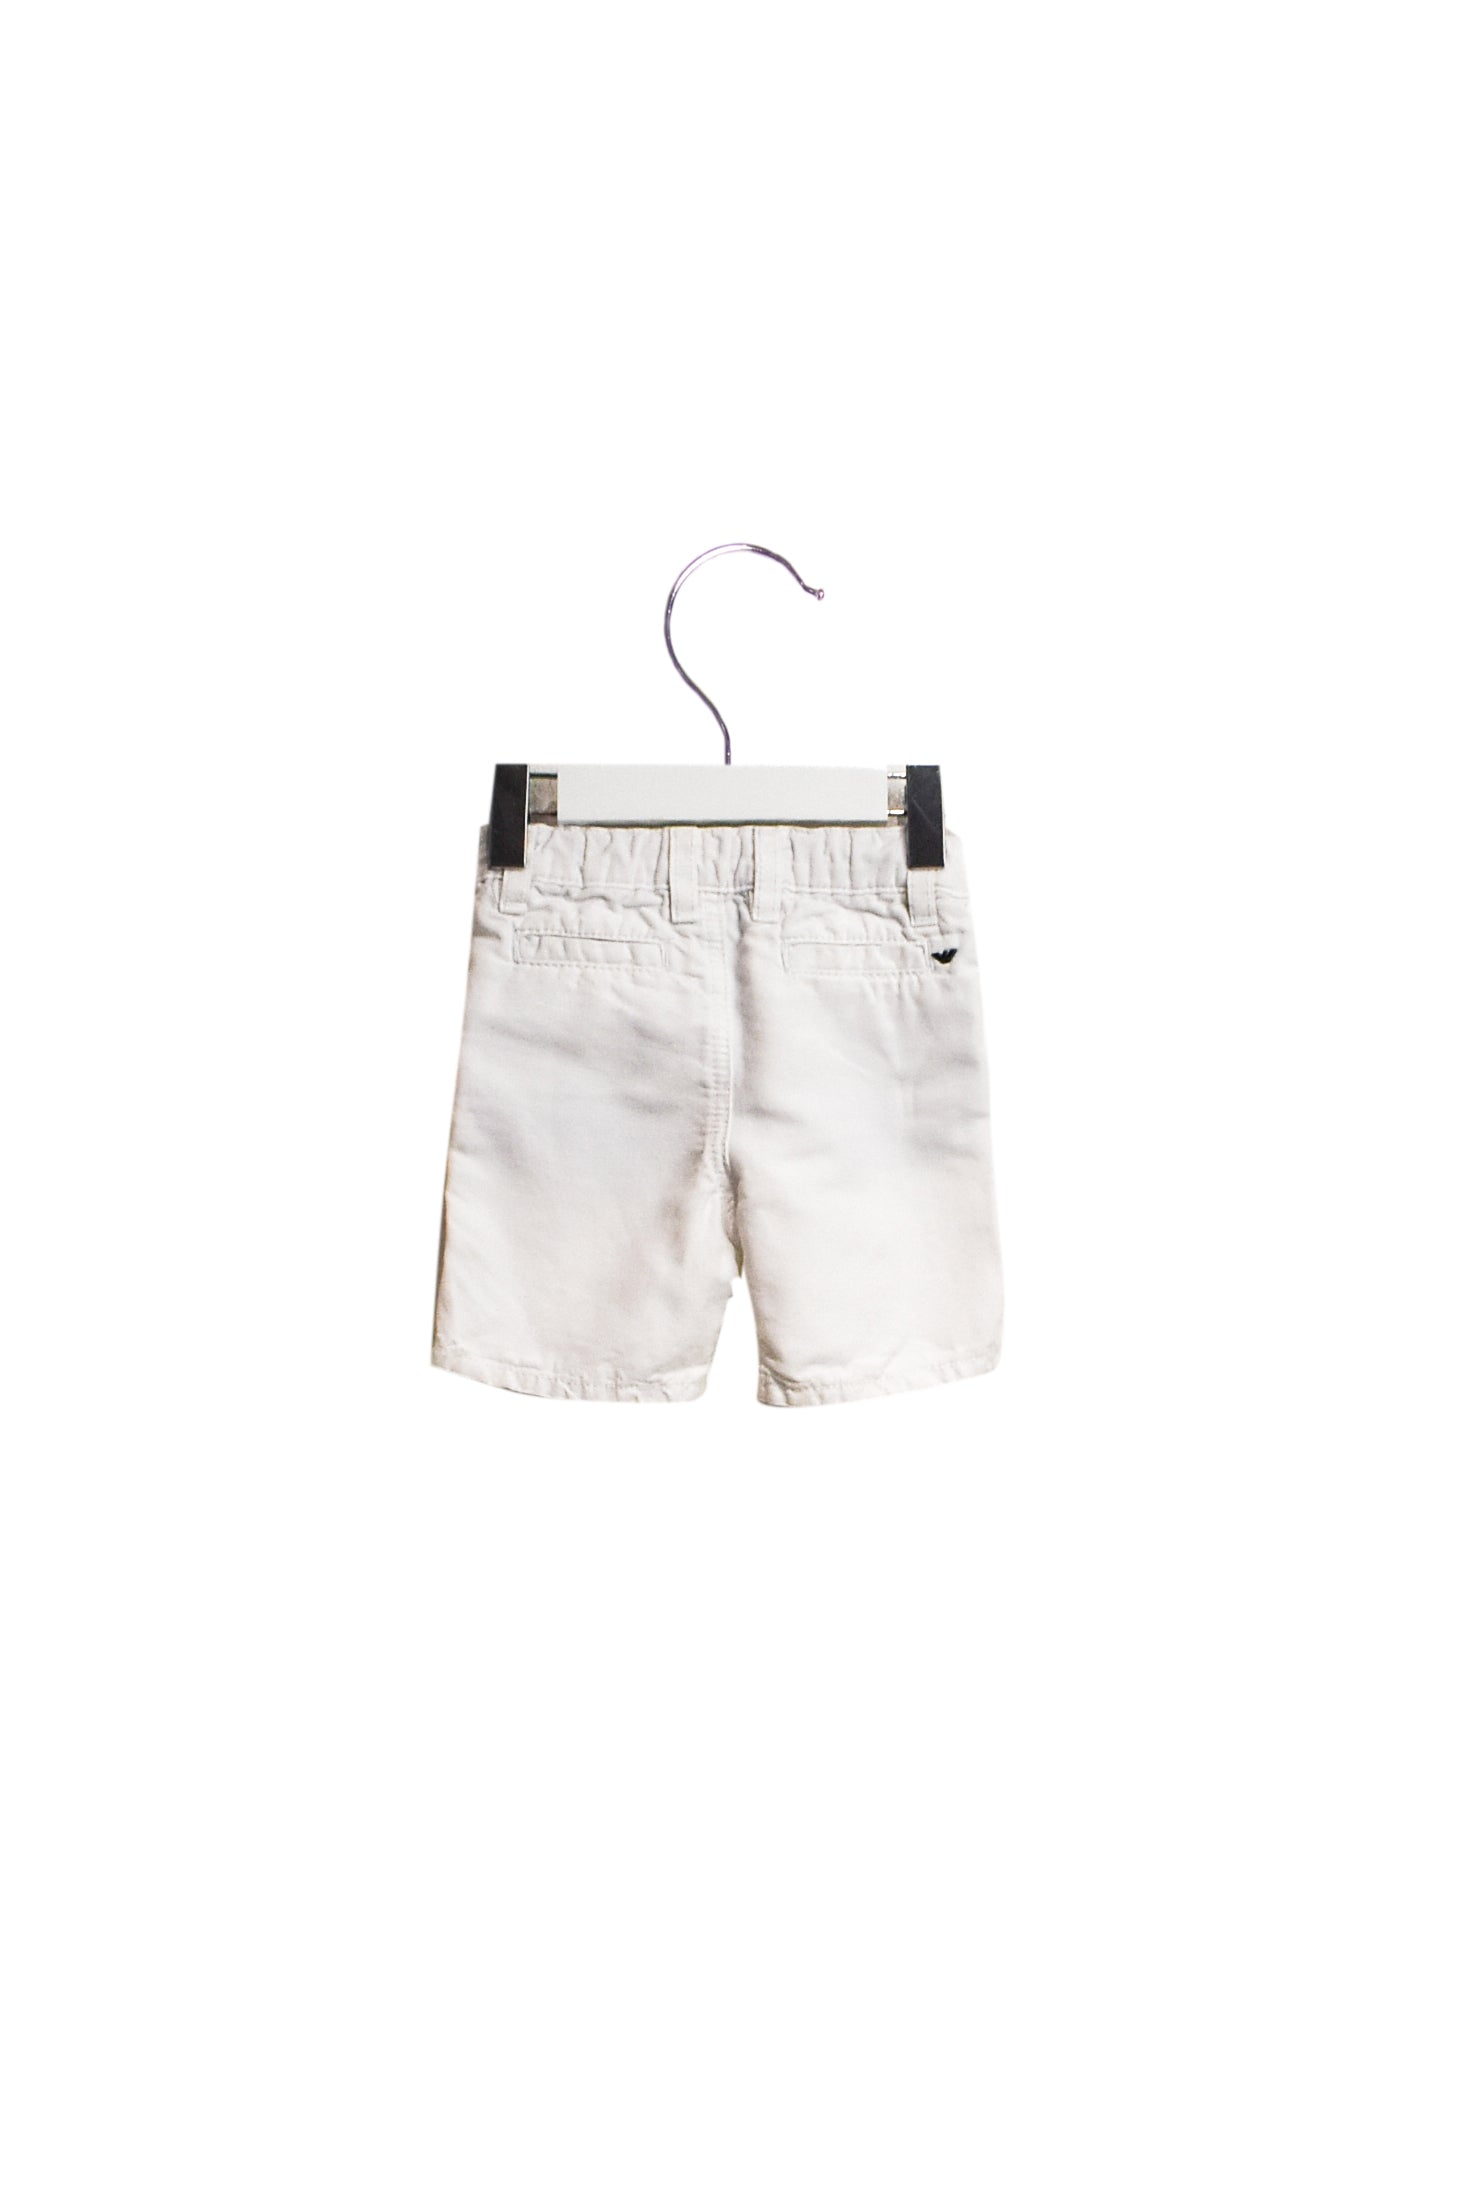 10023147 Armani Baby~Shorts 6M at Retykle